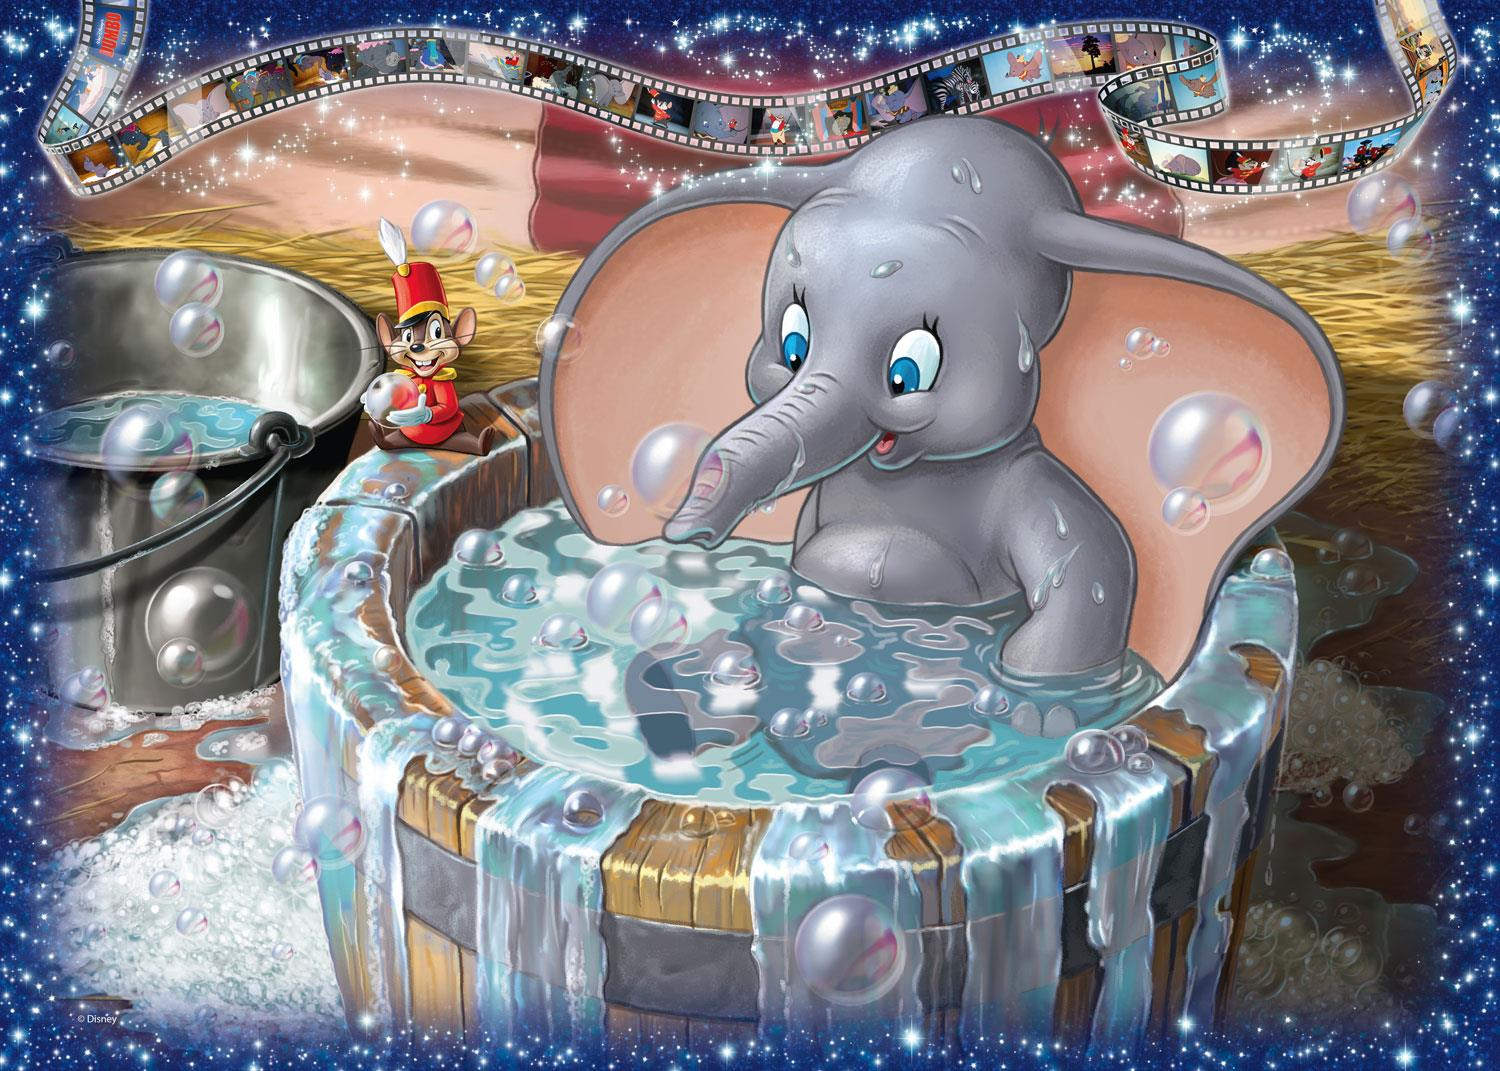 Ravensburger Disney Collector's Edition Dumbo Jigsaw Puzzle (1000 Pieces)